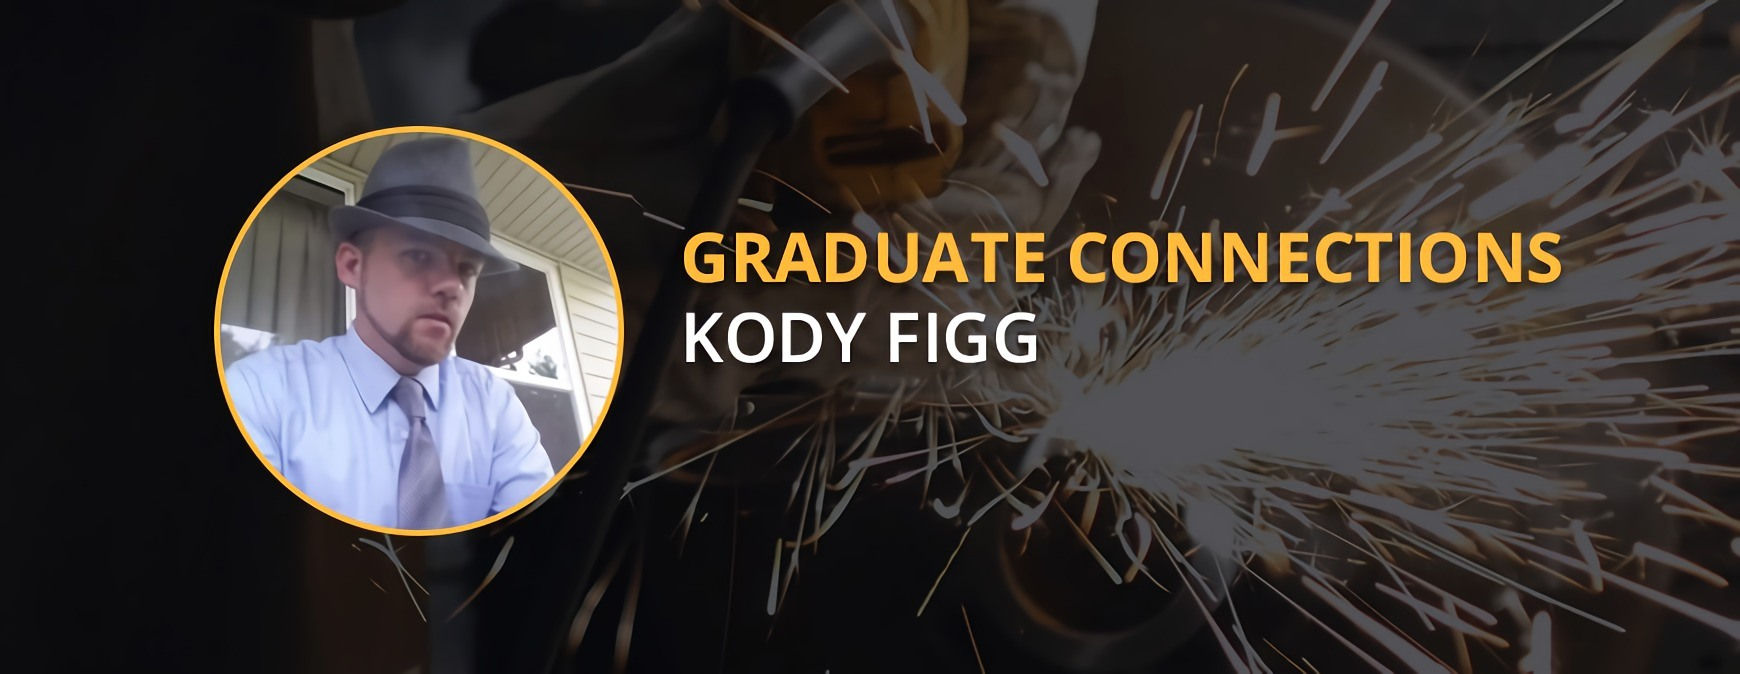 graduate connection kody figg